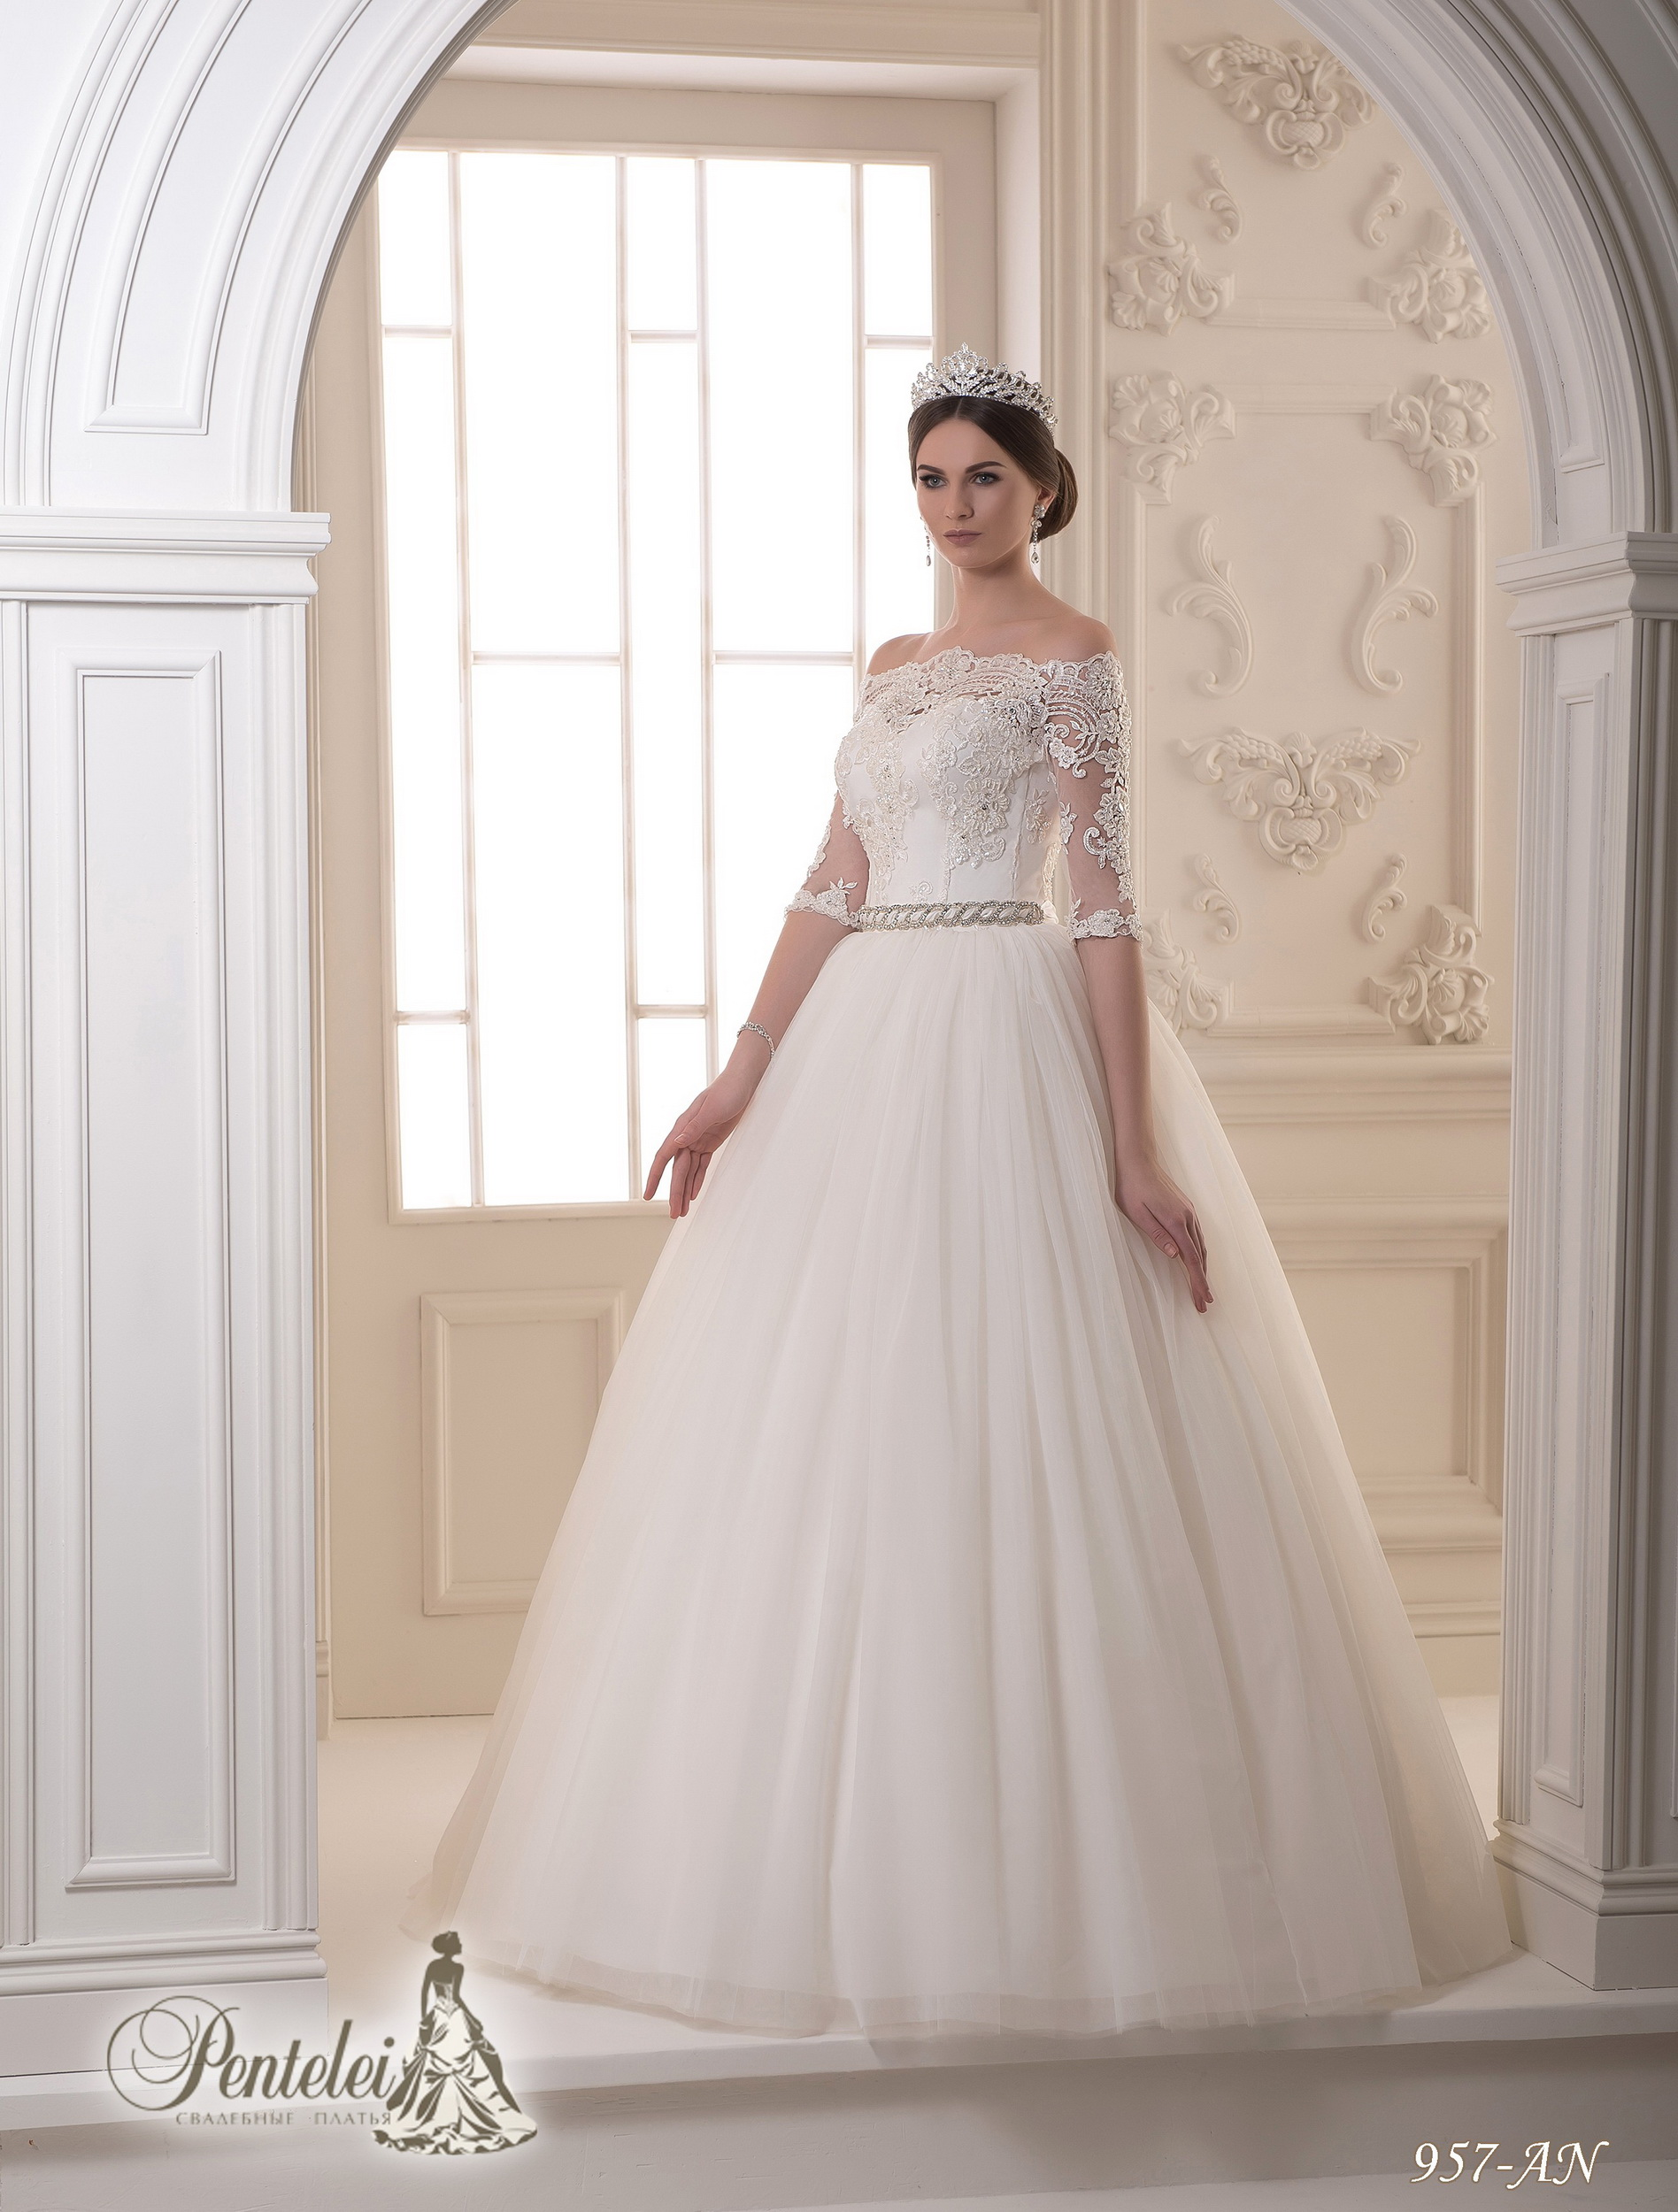 957-AN | Buy wedding dresses wholesale from Pentelei